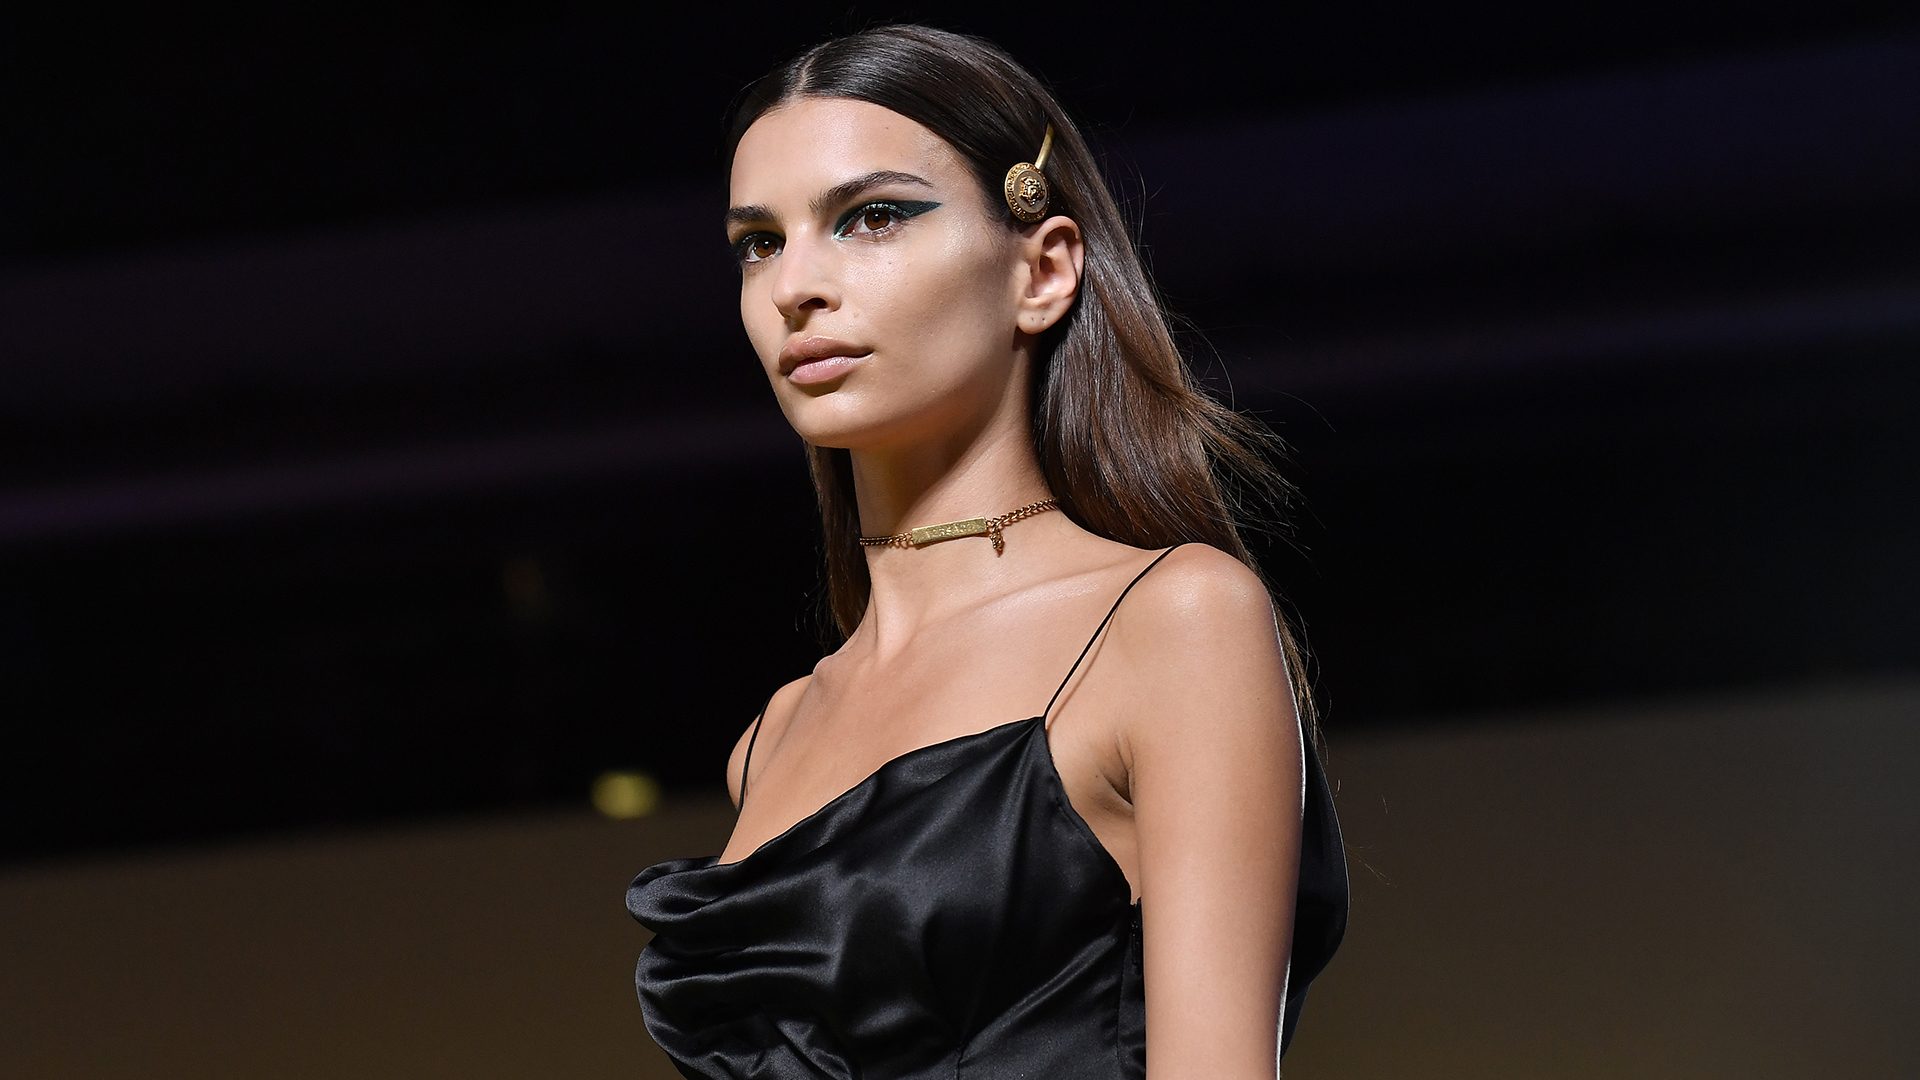 Super Model Emily Ratajkowski - Emily Ratajkowski Net Worth, Pics, Wallpapers, Career and Biography